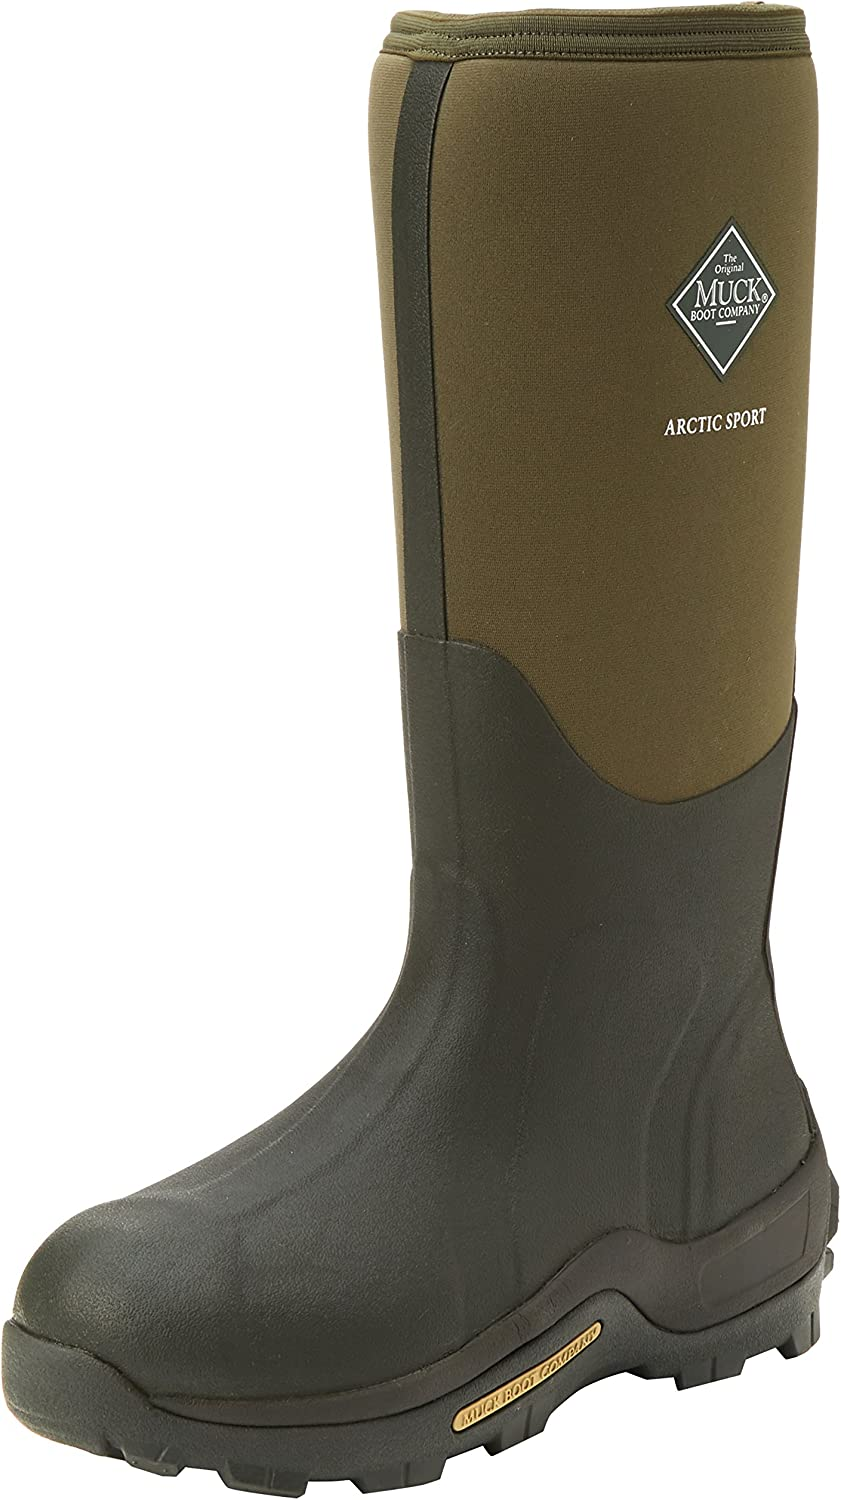 Muck Womens Arctic Sports Rubber Boots